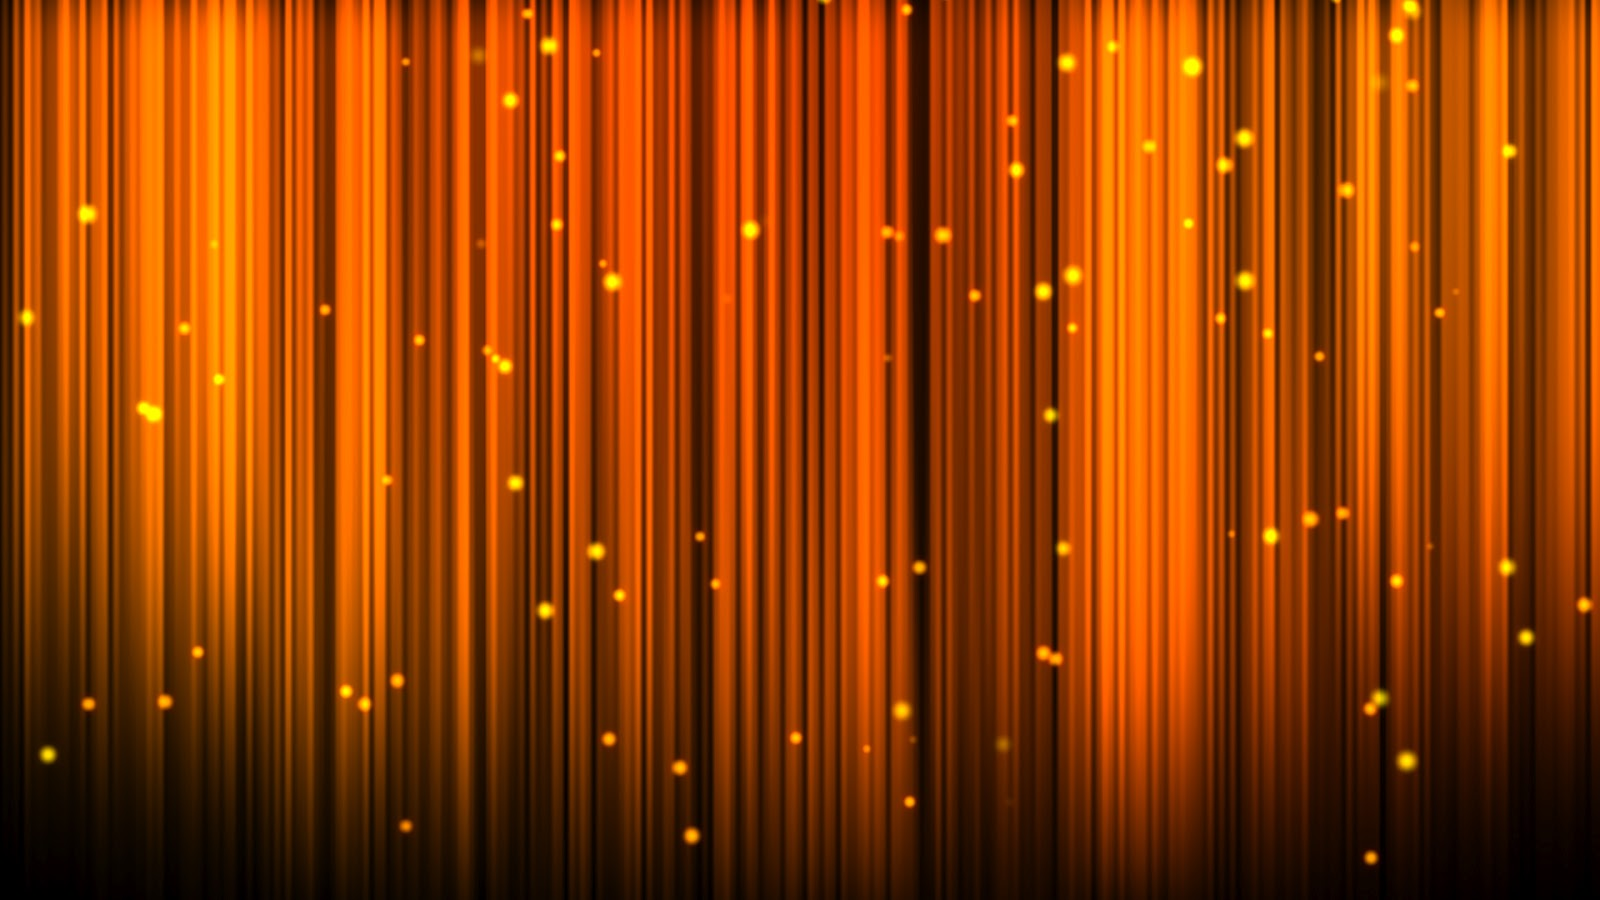 Background image effects - Seamlessly Loop Able Golden Motion Background Designed In Adobe After Effects Specifications Resolution 1080p Length 10 Sec Framerate 29 97 Fps